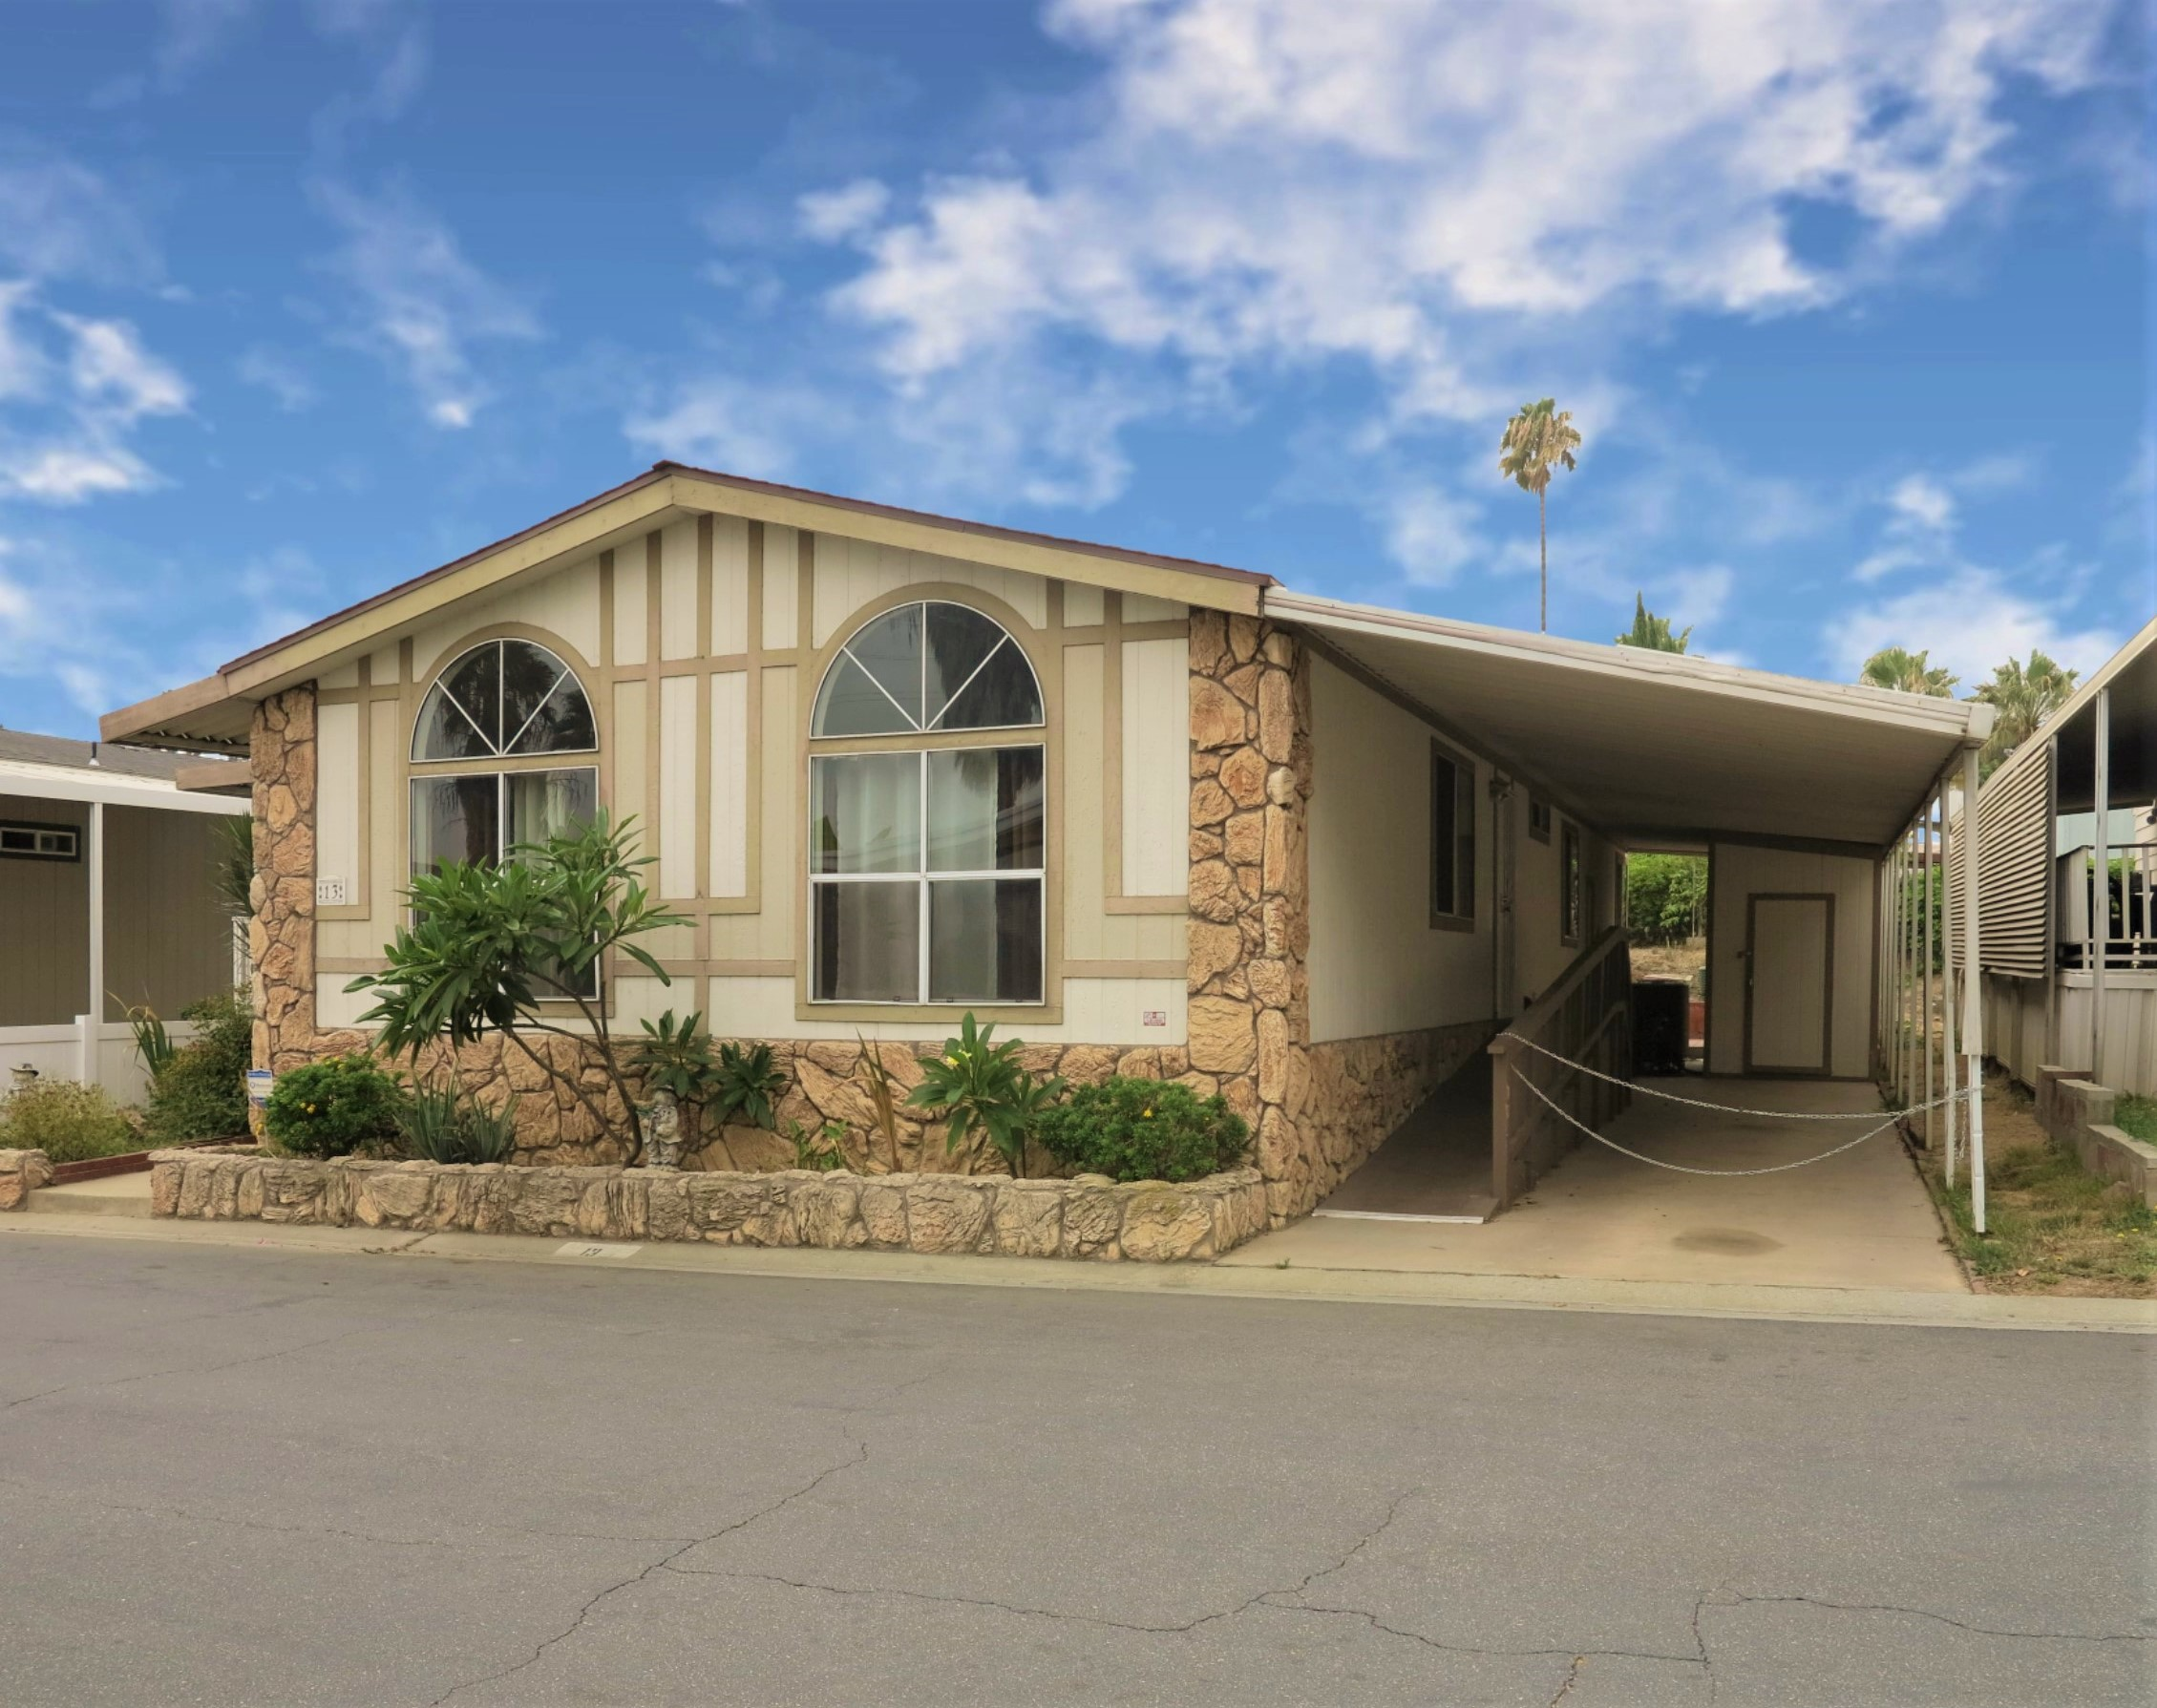 Homes for Sale Archives | LaRoche Team on mobile home park liberal ks, mobile home with court yard, mobile homes parks in maryland, mobile home park financing, mobile home park style,